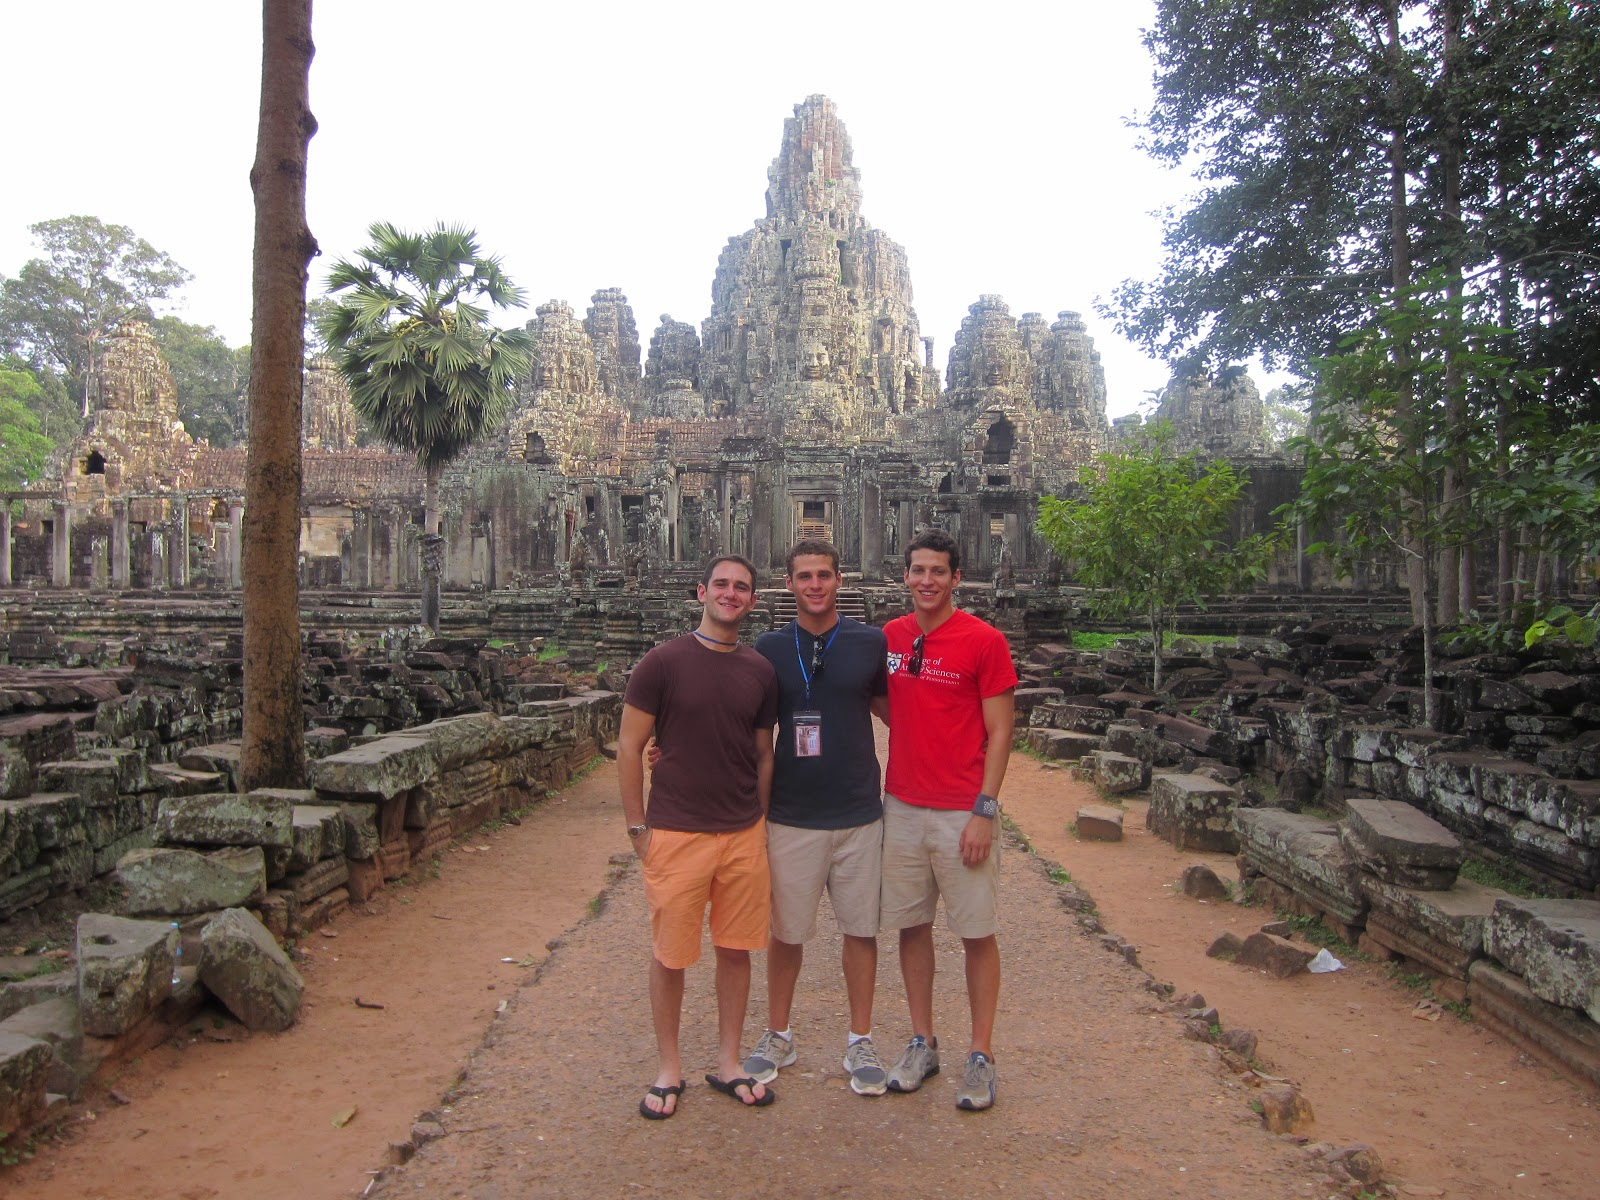 Bangkok has him now siem reap legends of the hidden temple